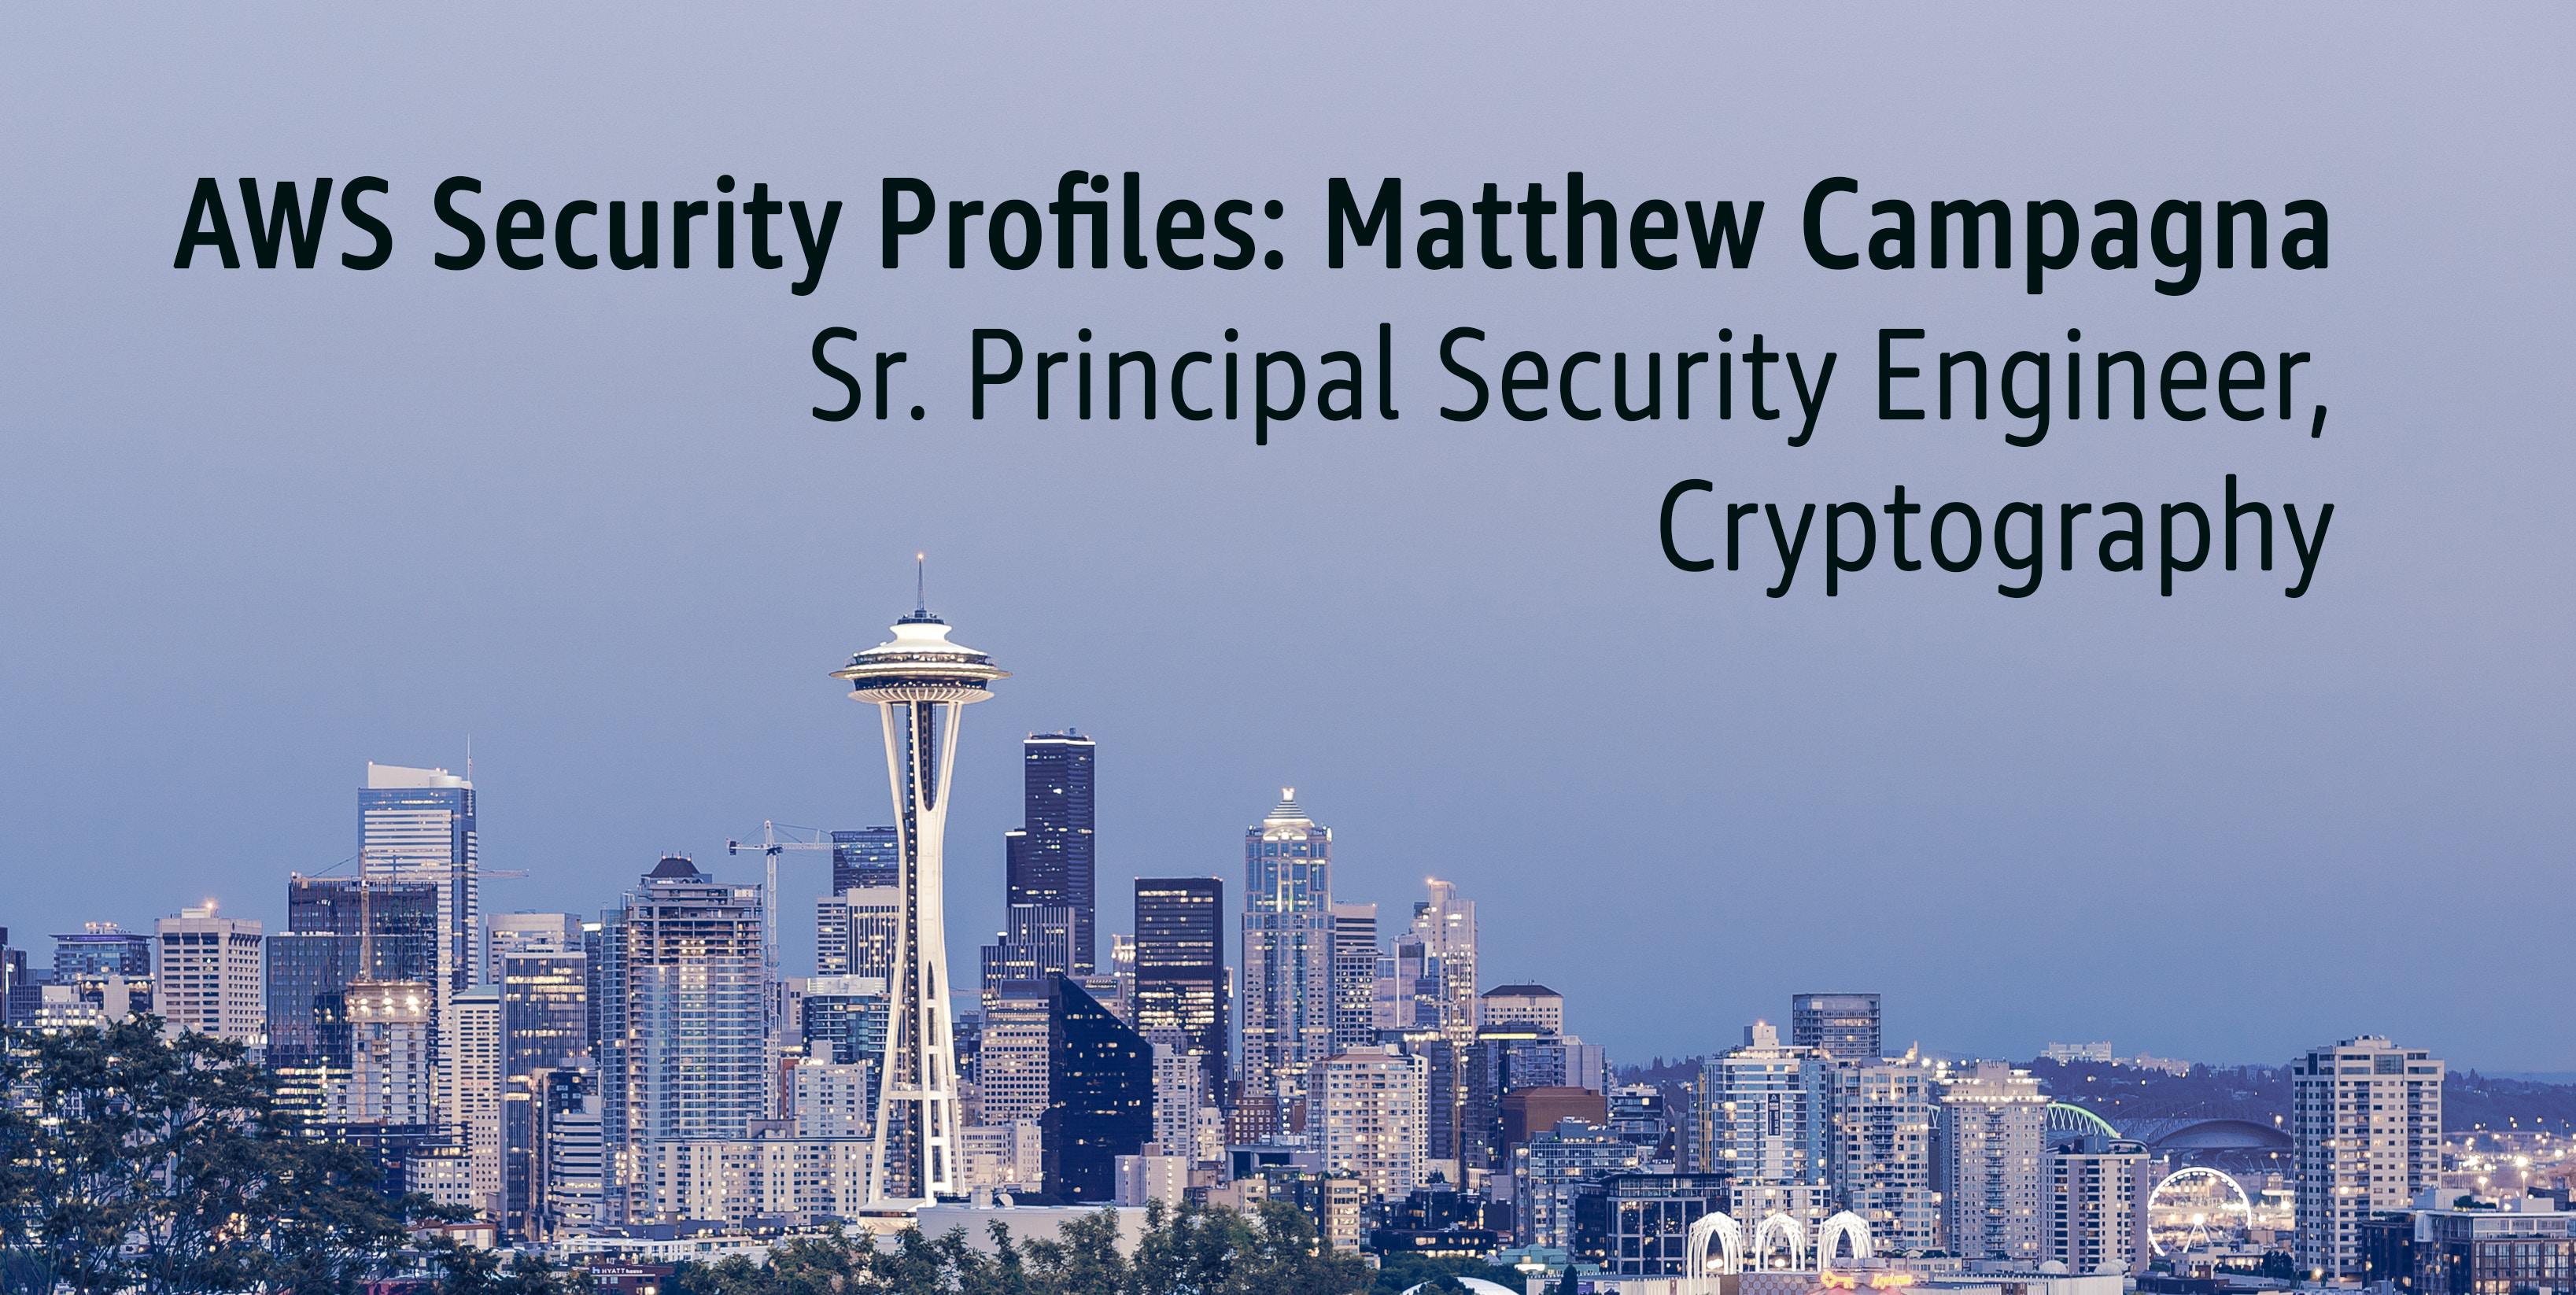 AWS Security Profiles: Matthew Campagna, Senior Principal Security Engineer, Cryptography